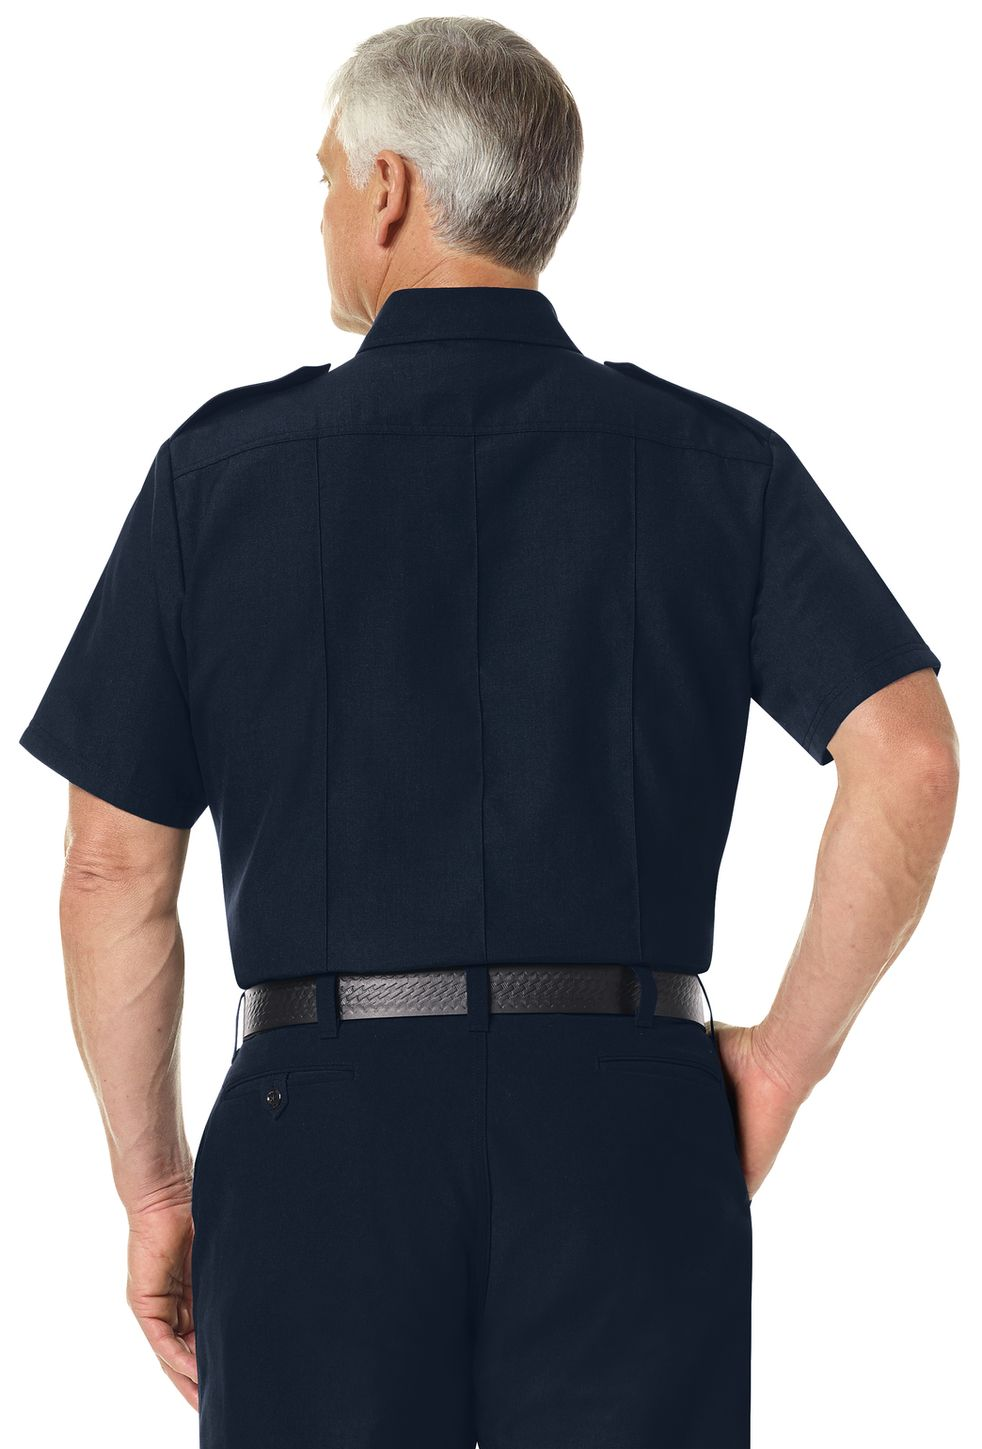 Workrite FR Shirt FSC6, Fire Chief, Classic Short Sleeve Midnight Navy Example Back